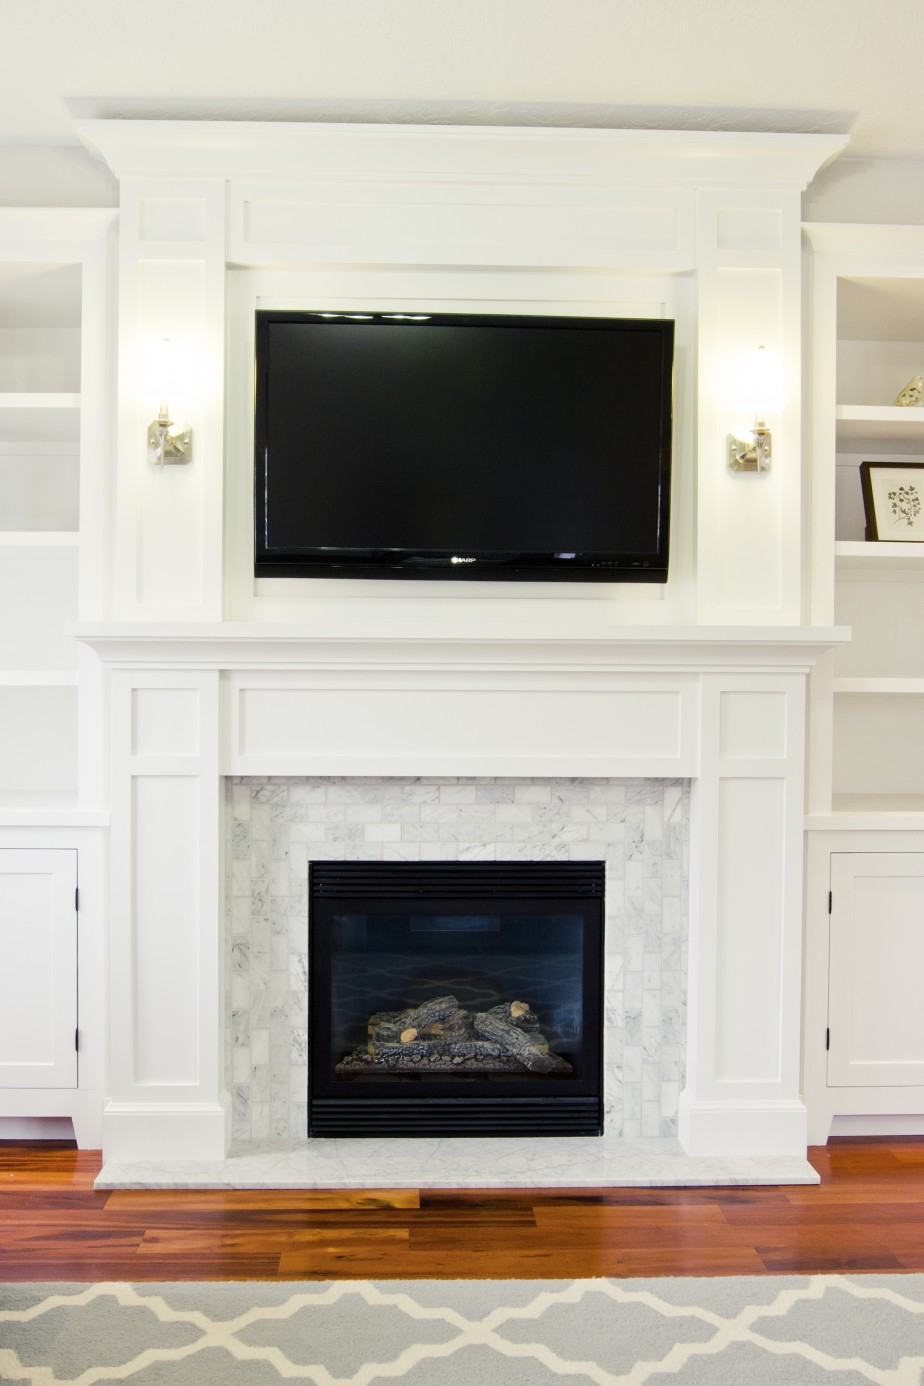 White tile fireplace surround fireplace design ideas for Wood fireplace surround designs